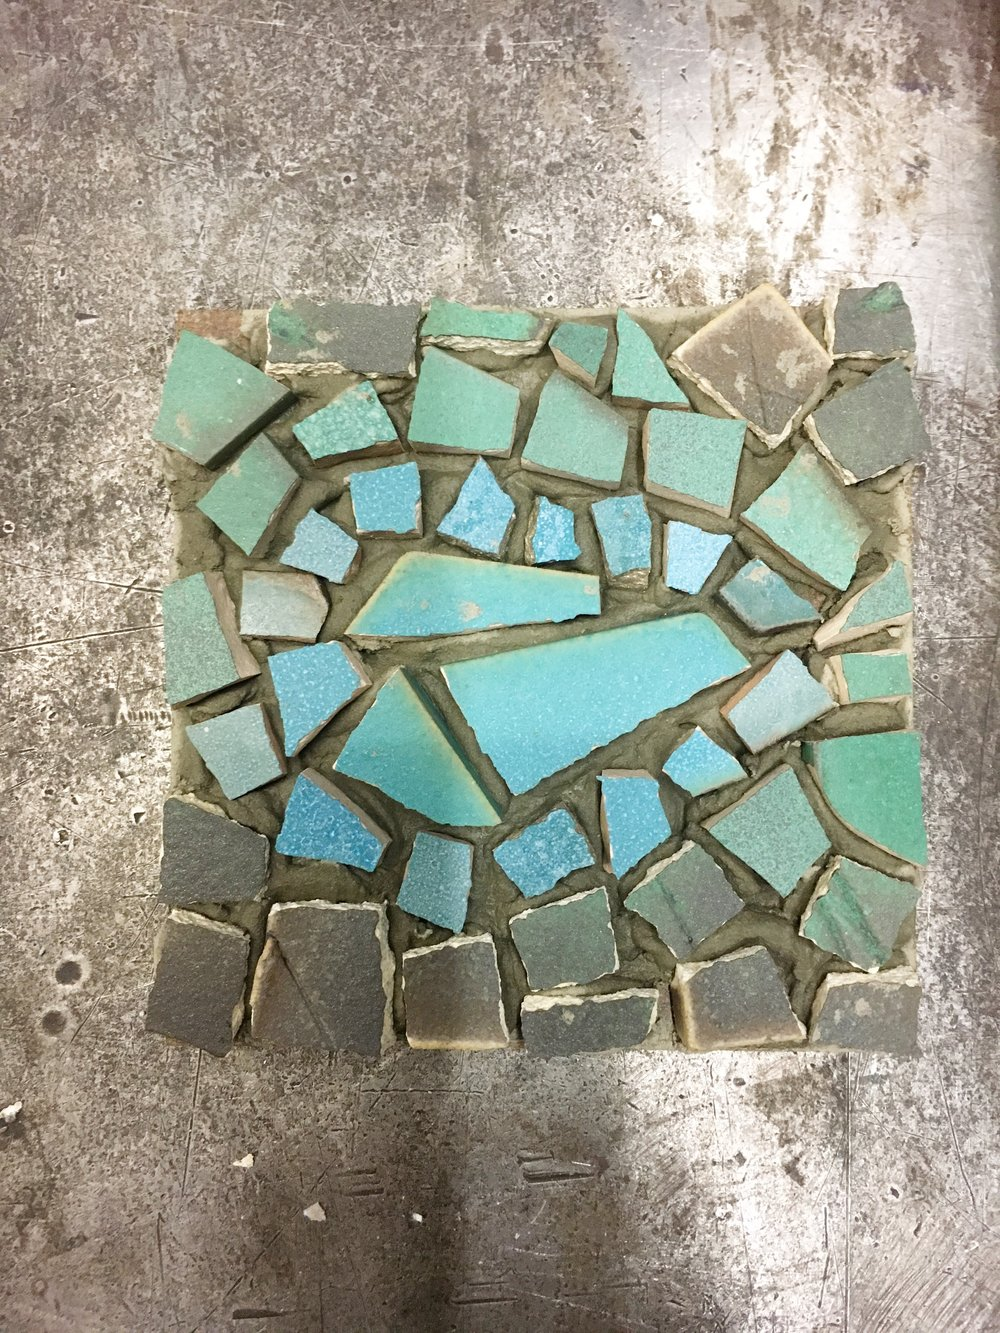 AIGA mosaic workshop student work PH2018 (9).JPG